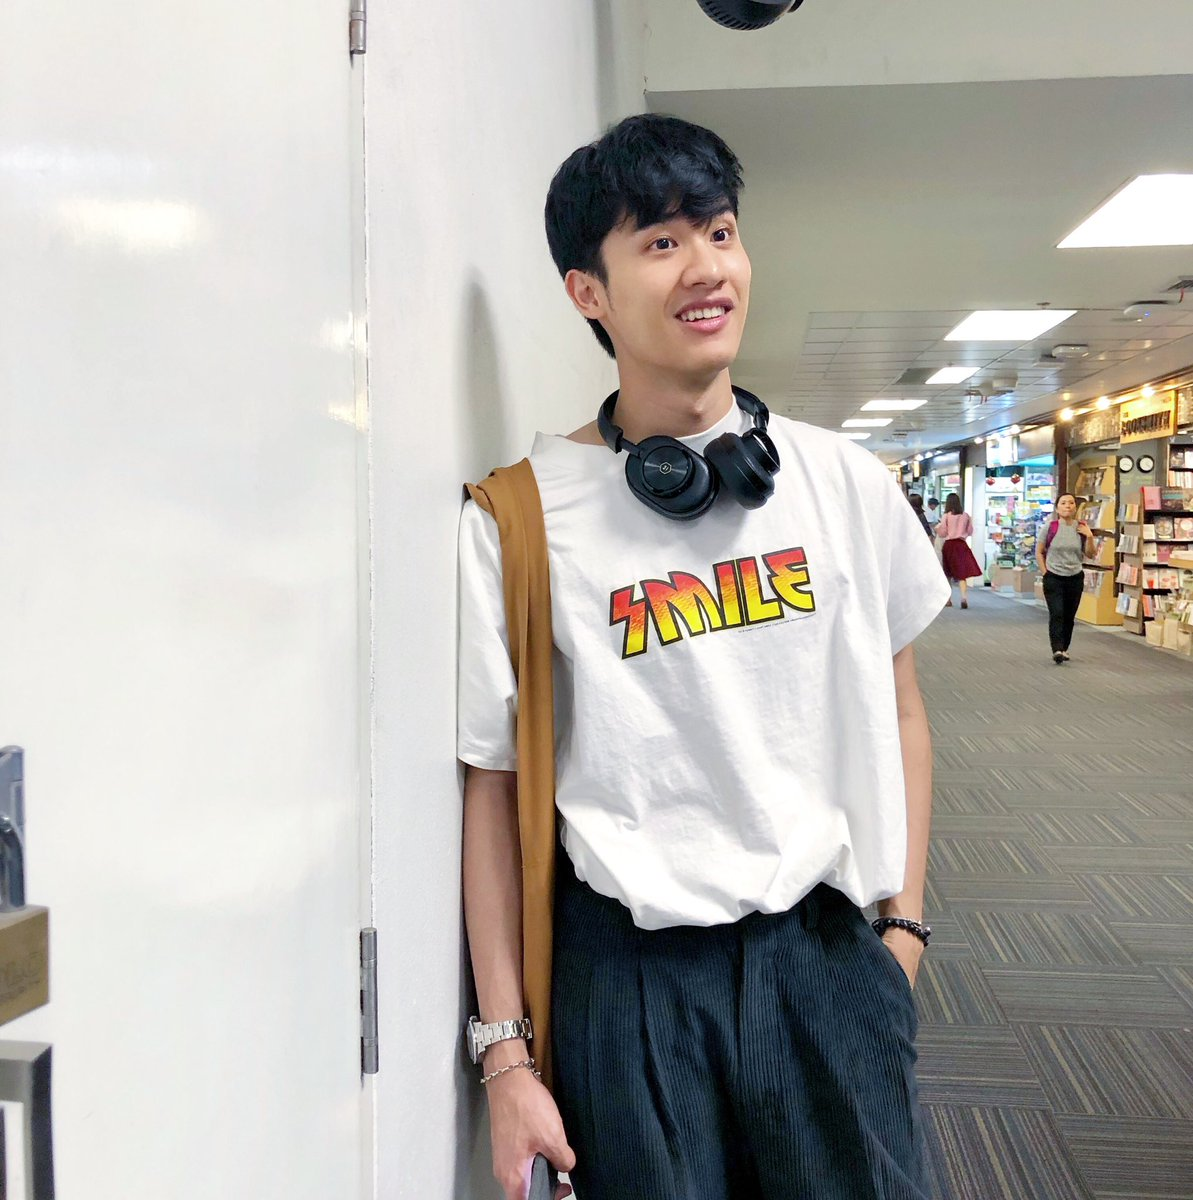 You&#39;re perfect again today.  @Tawan_V #Tawan_V #ชาวบ้าน  #เตนิว<br>http://pic.twitter.com/DQpB8vWRLt